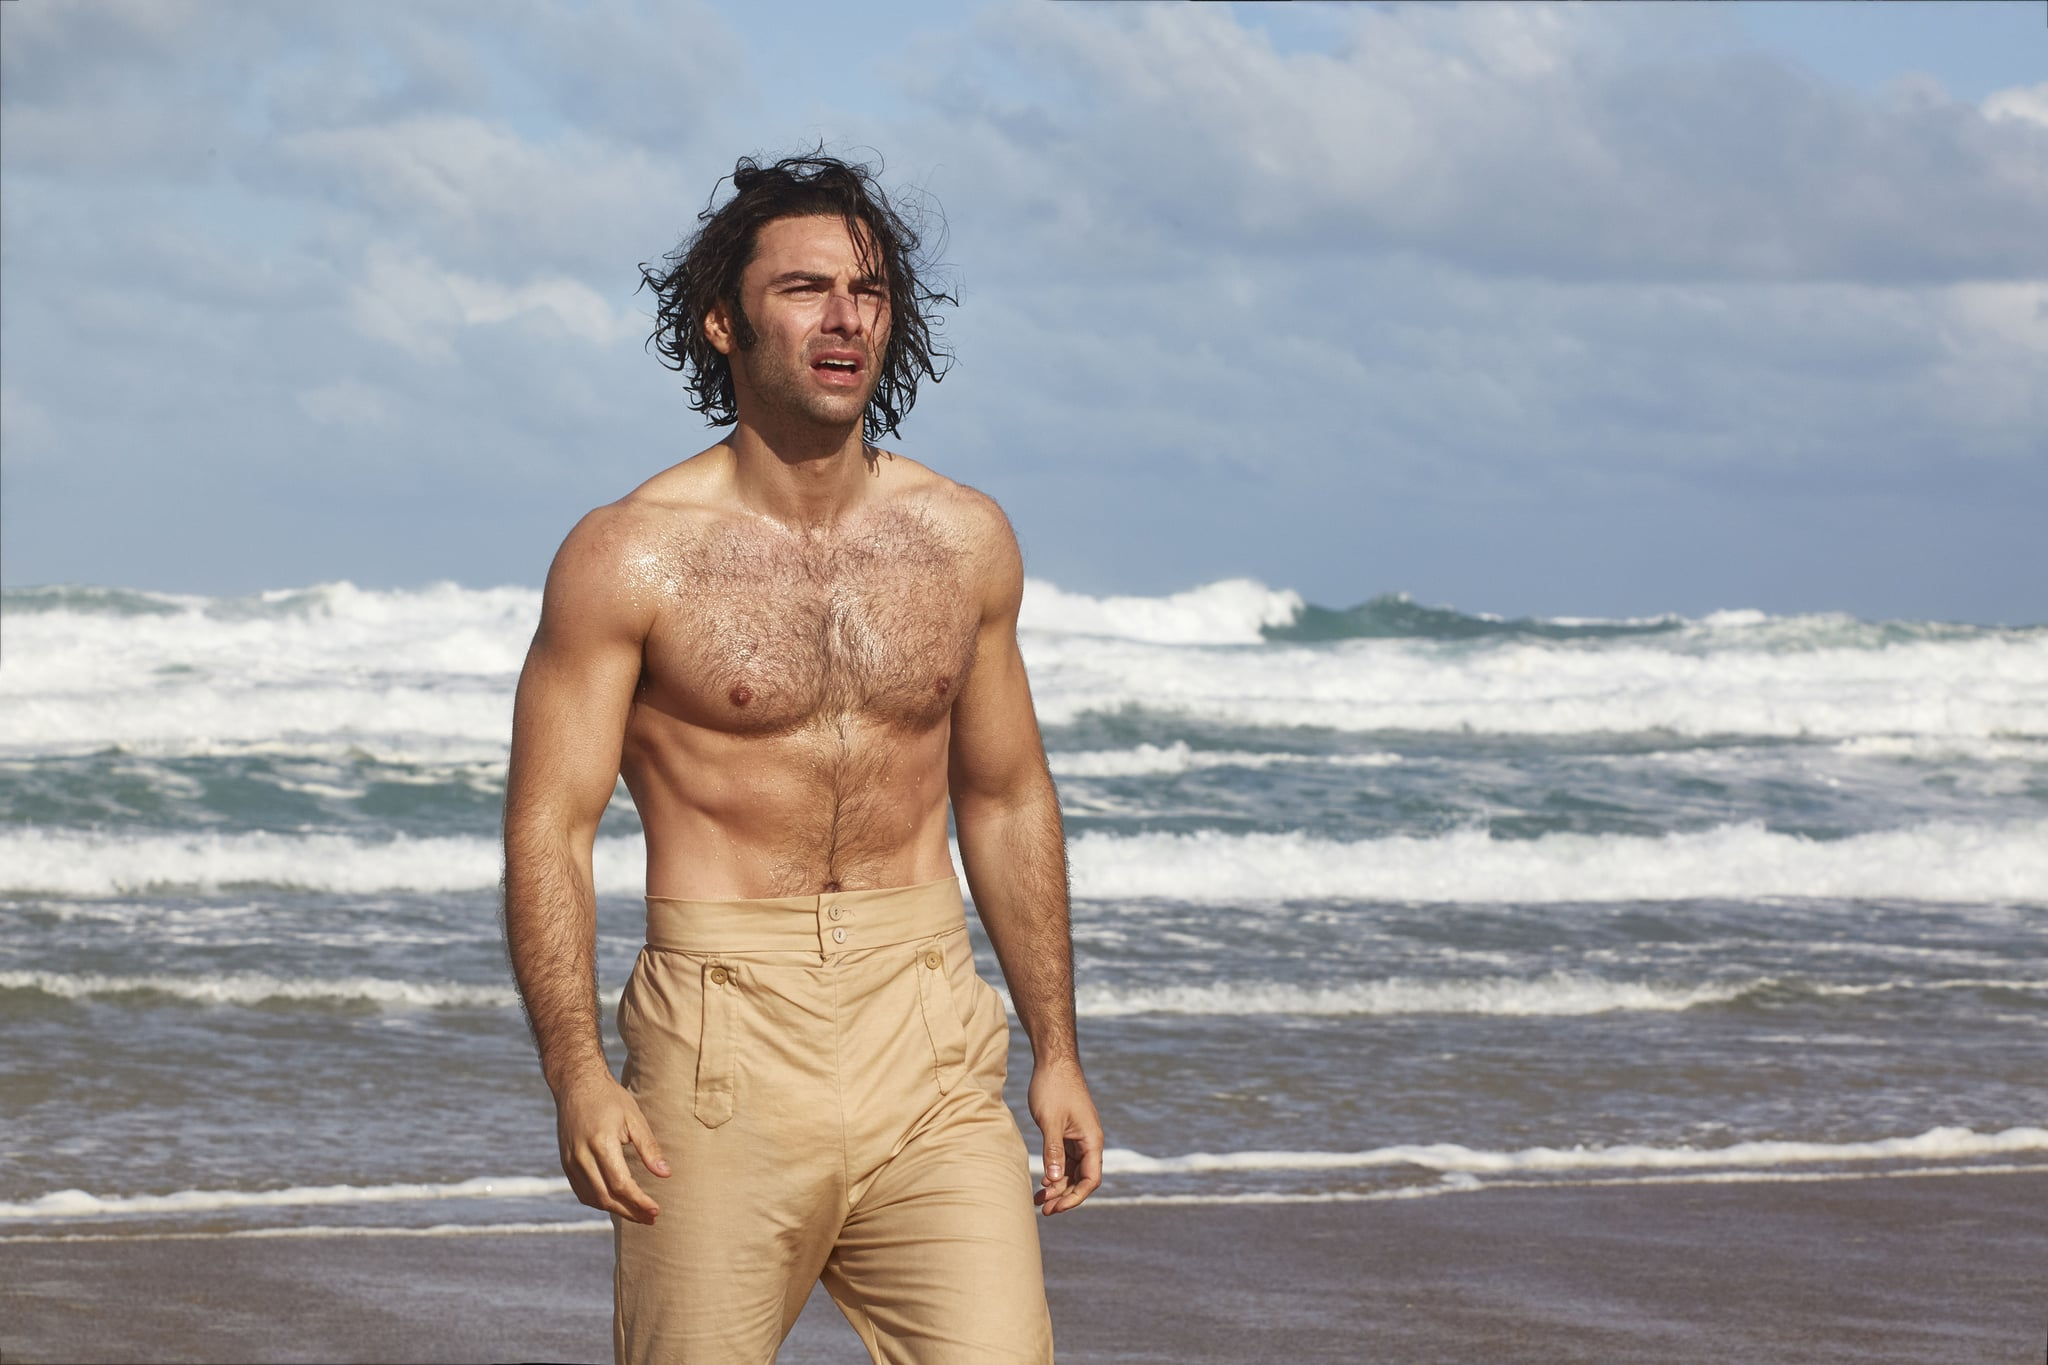 Poldark, Season 4MASTERPIECE on PBSShown: Aidan Turner as Ross PoldarkFor editorial use only.Courtesy of Mammoth Screen and MASTERPIECE